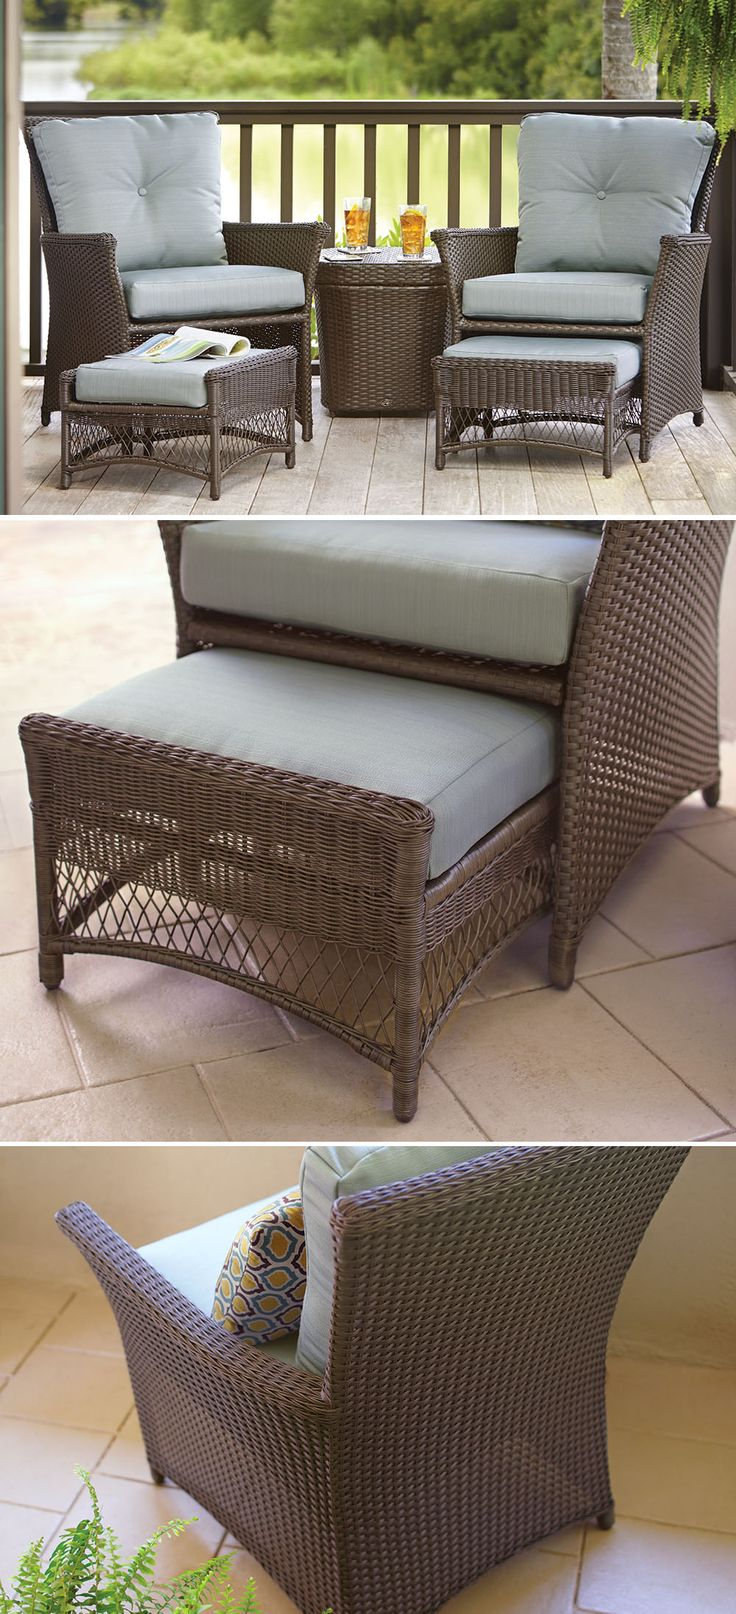 Best 25 Small patio furniture ideas on Pinterest  Apartment patio decorating Small terrace